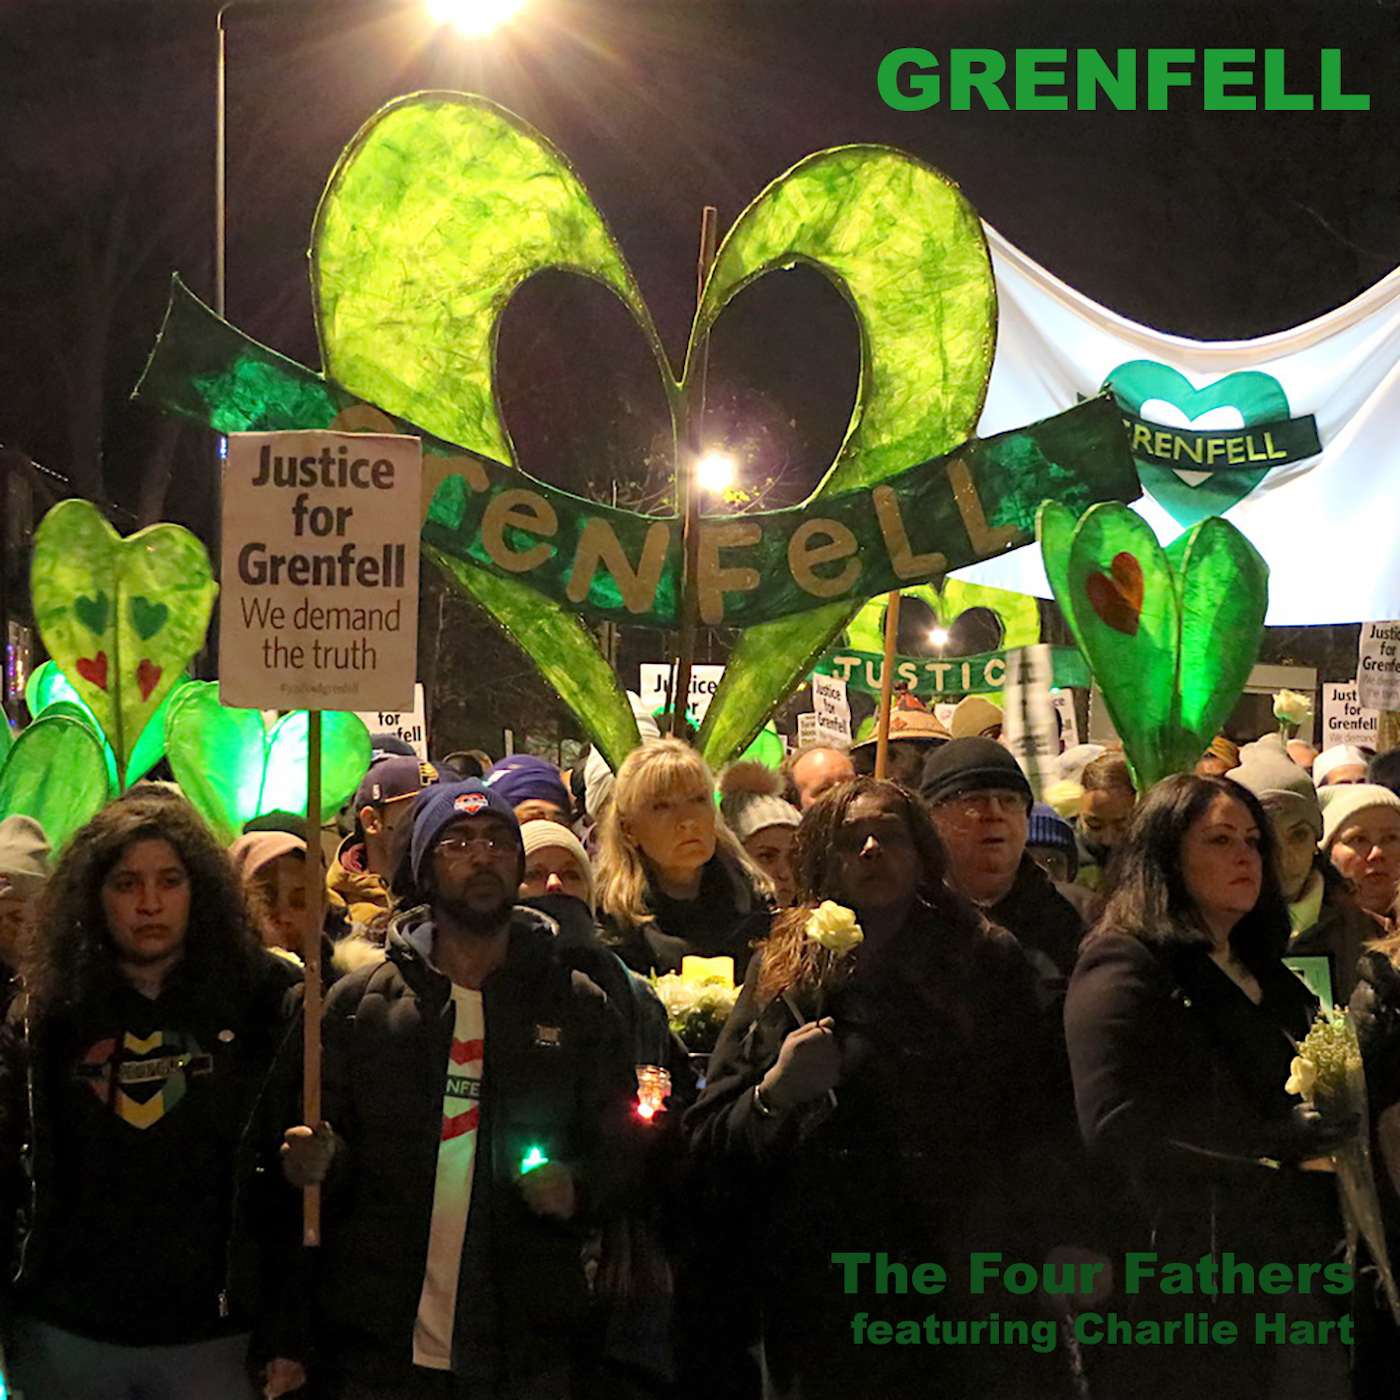 The cover of 'Grenfell' by The Four Fathers, featuring a photo taken in North Kensington on December 14, 2017 on one of the Silent Walks that take place on the 14th of every month (Photo: Andy Worthington).